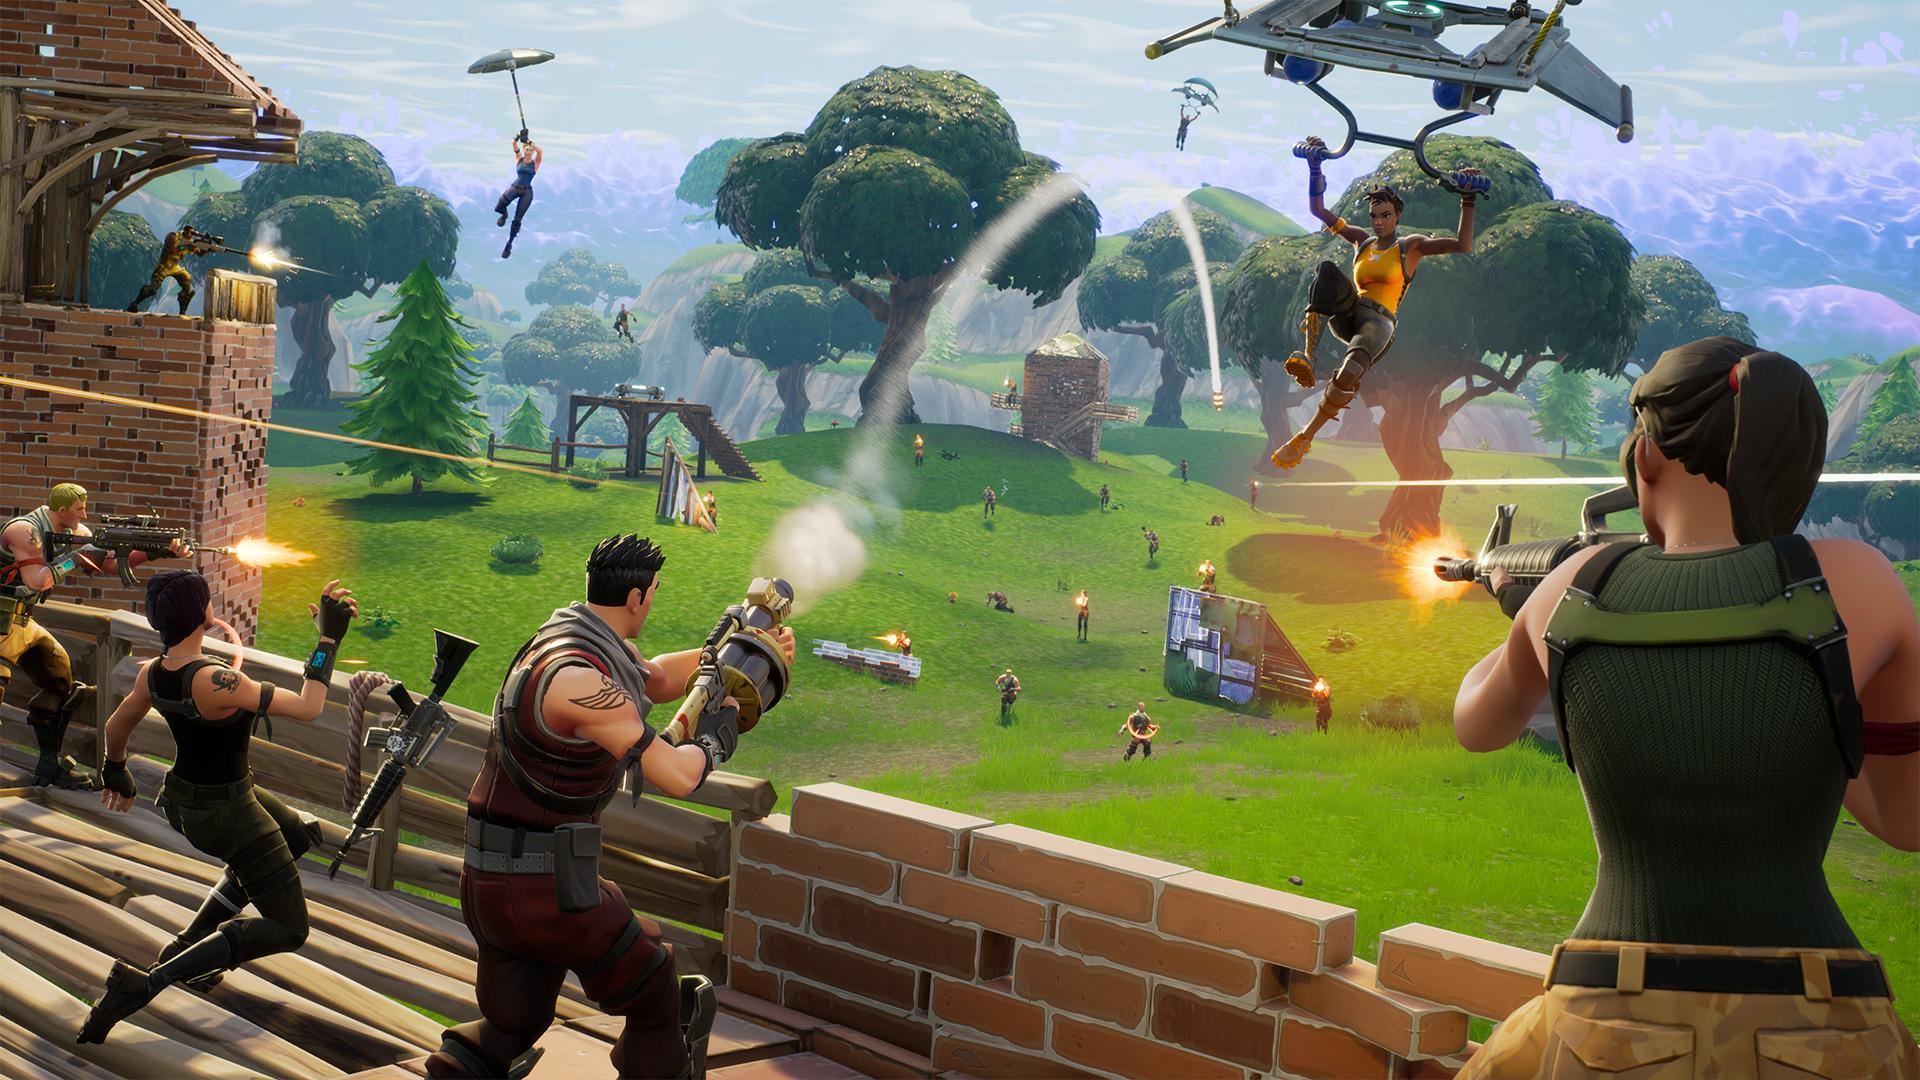 Fortnite V 3 1 0 Patch Notes Revealed, Adds New Battle